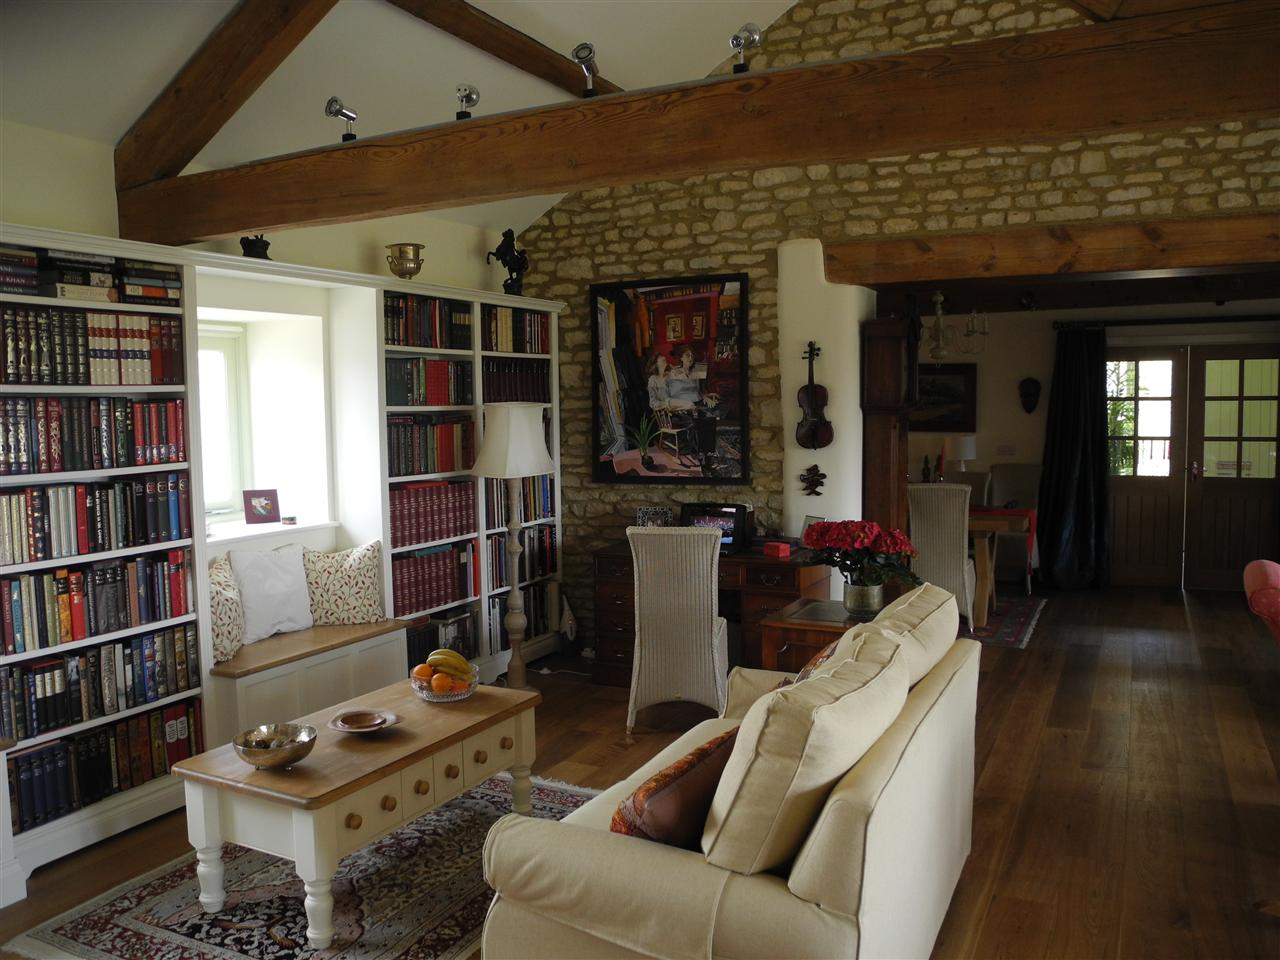 Barn conversion Library